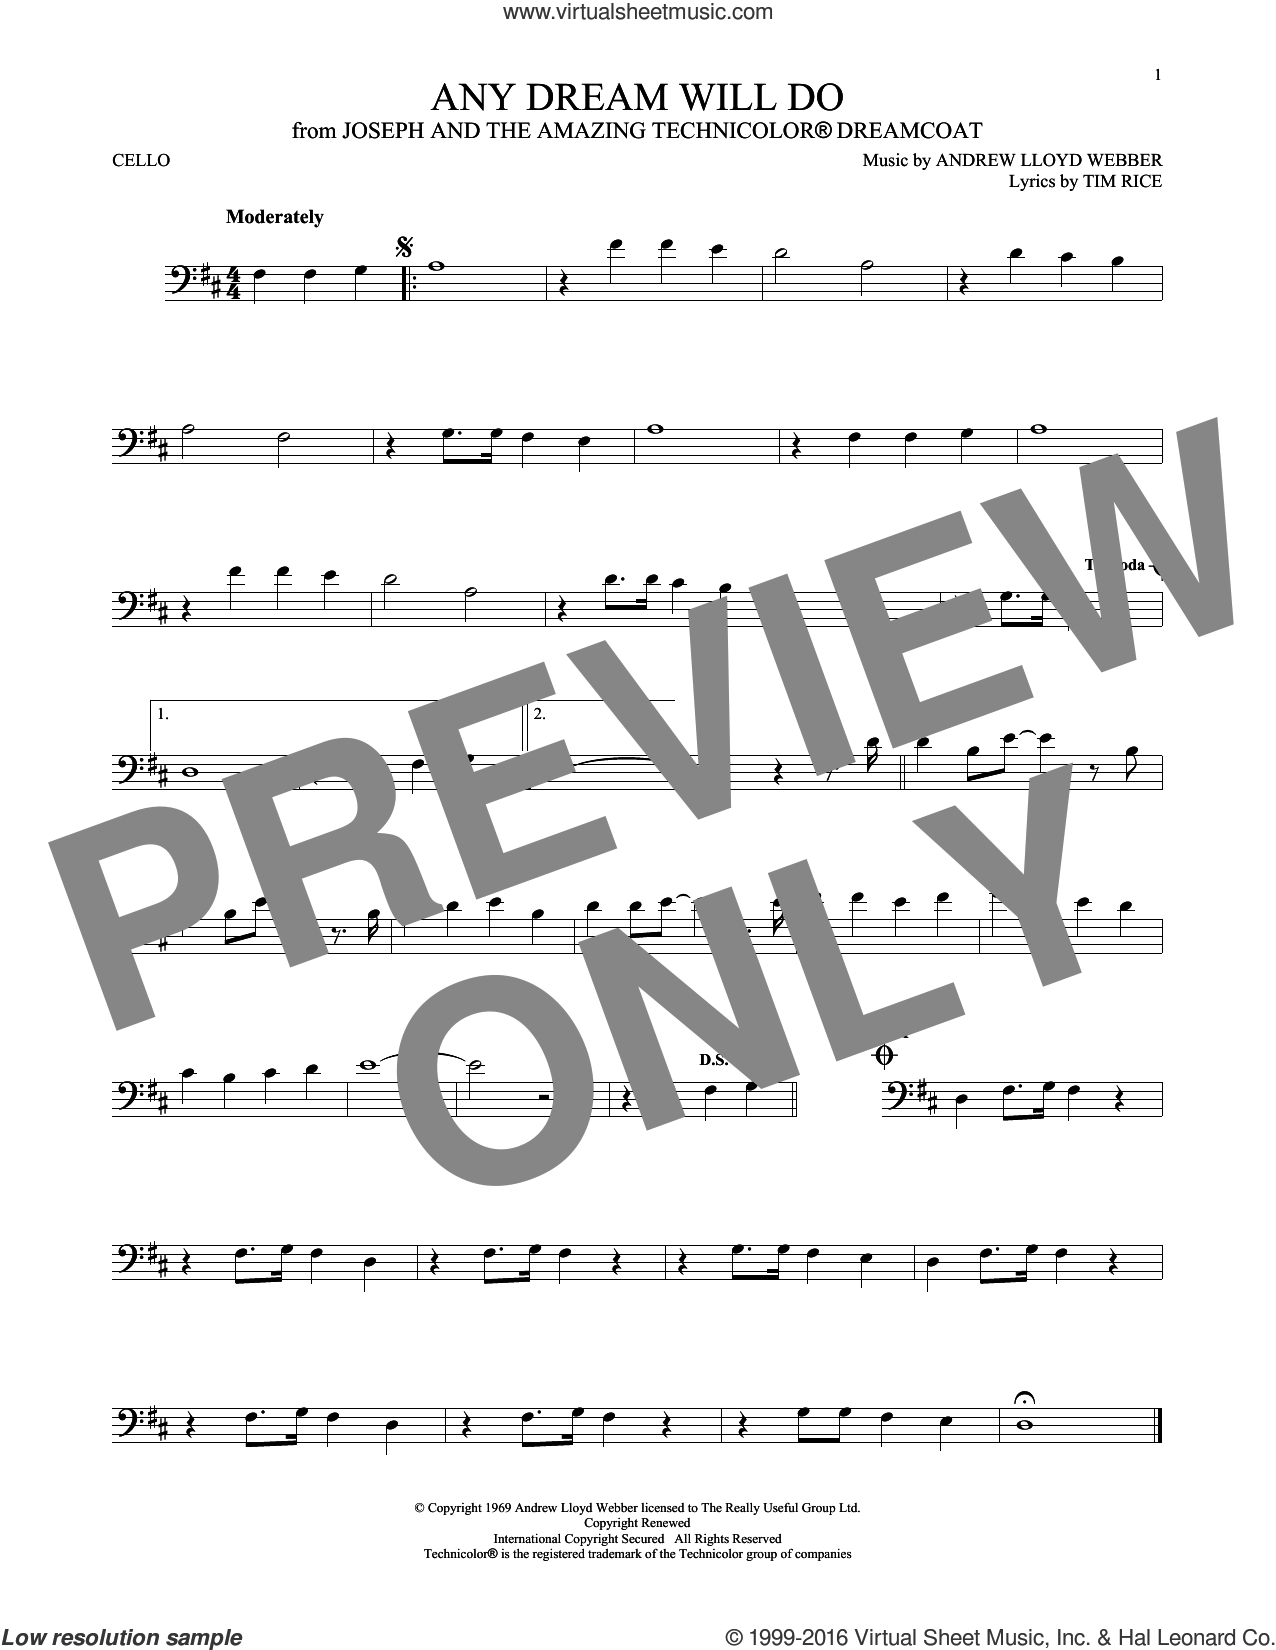 Any Dream Will Do (from Joseph and the Amazing Technicolor Dreamcoat) sheet music for cello solo by Andrew Lloyd Webber, Andrew Lloyd Webber & Tim Rice and Tim Rice, intermediate skill level